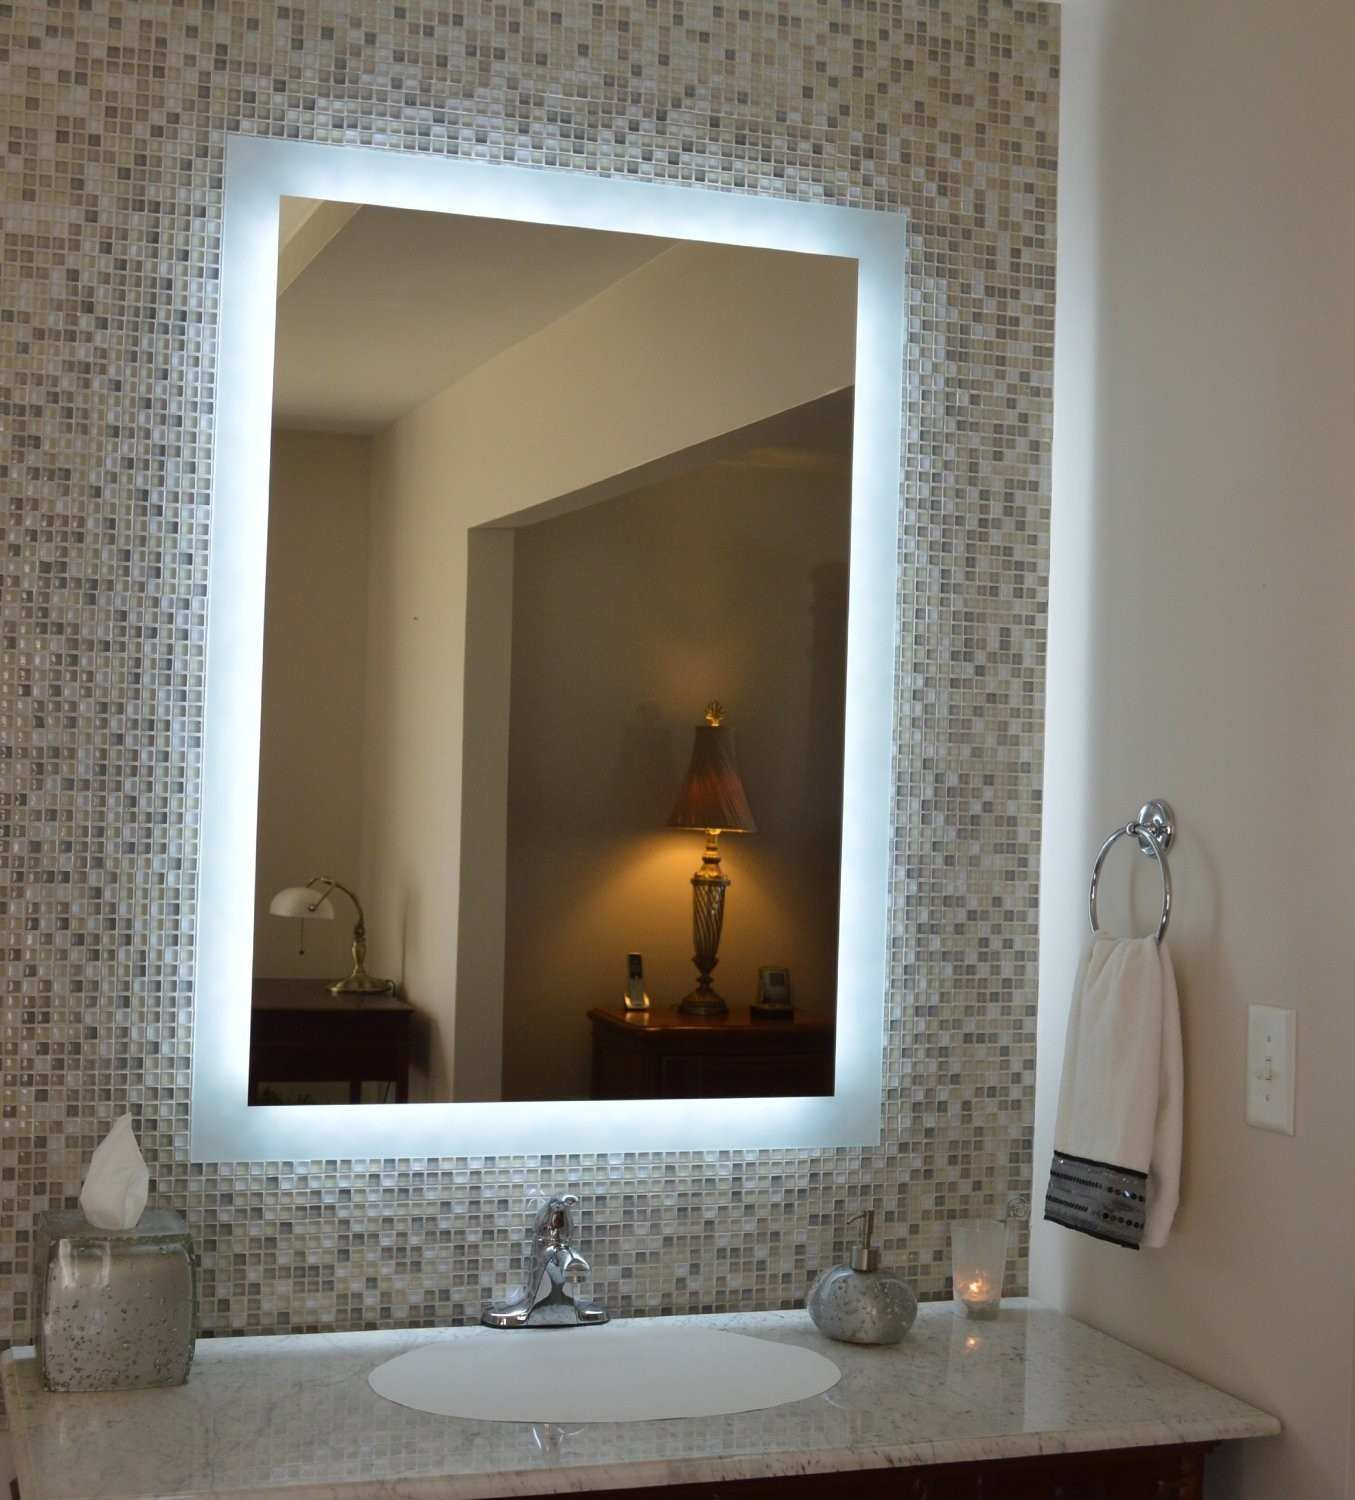 Dazzling Bath Mirror With Lights Bathroom Led Image Top Decorating